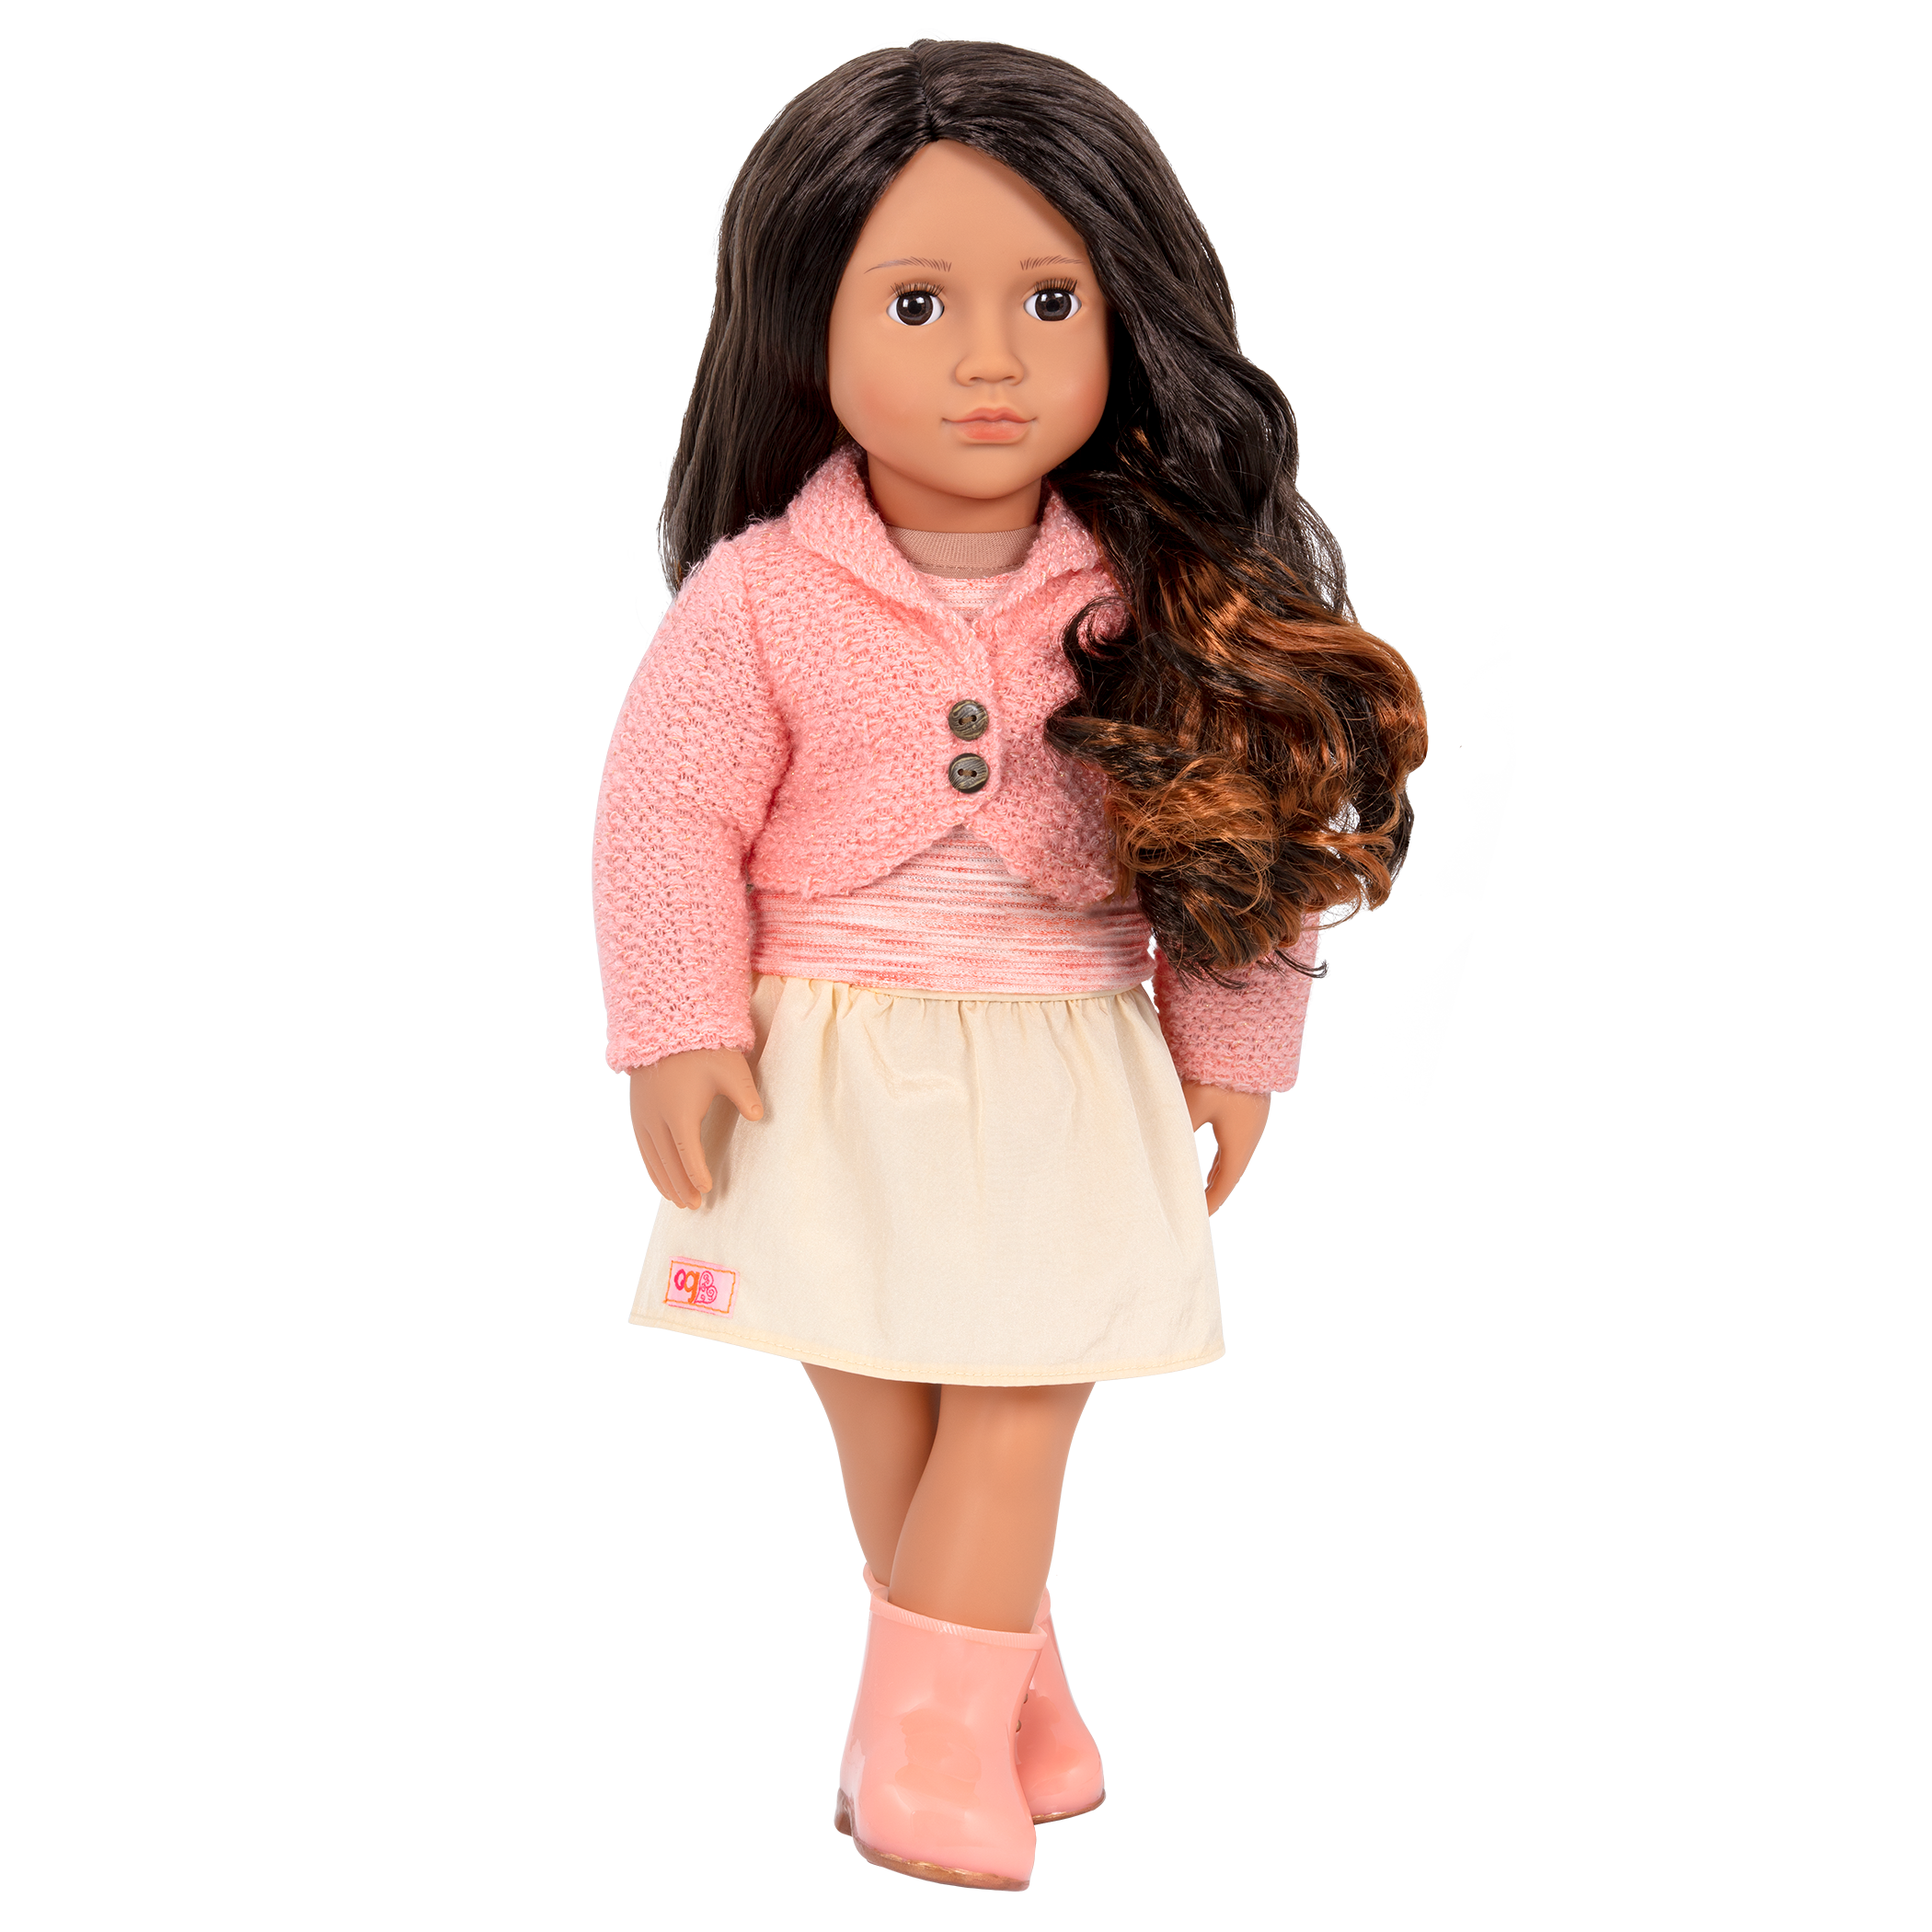 Maricela Regular 18-inch Doll with legs crossed